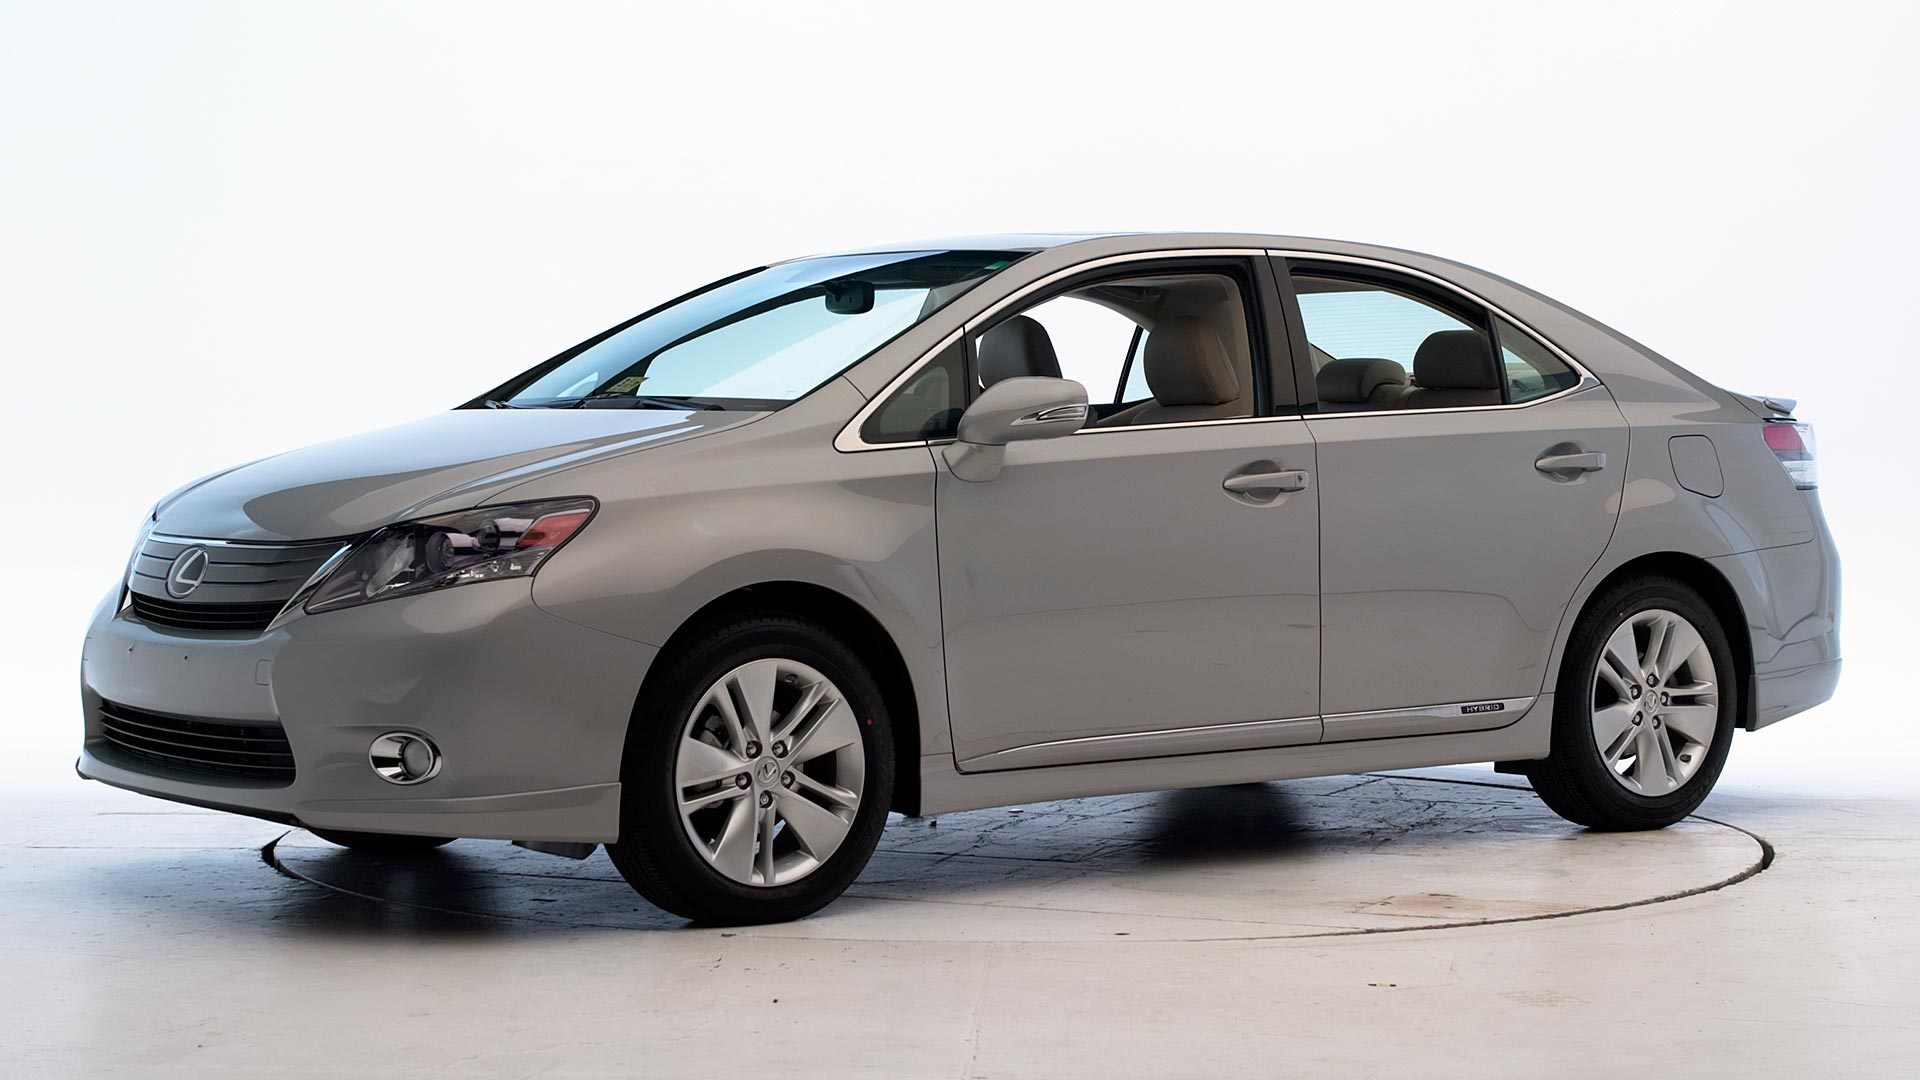 2011 Lexus HS 250h 4-door sedan